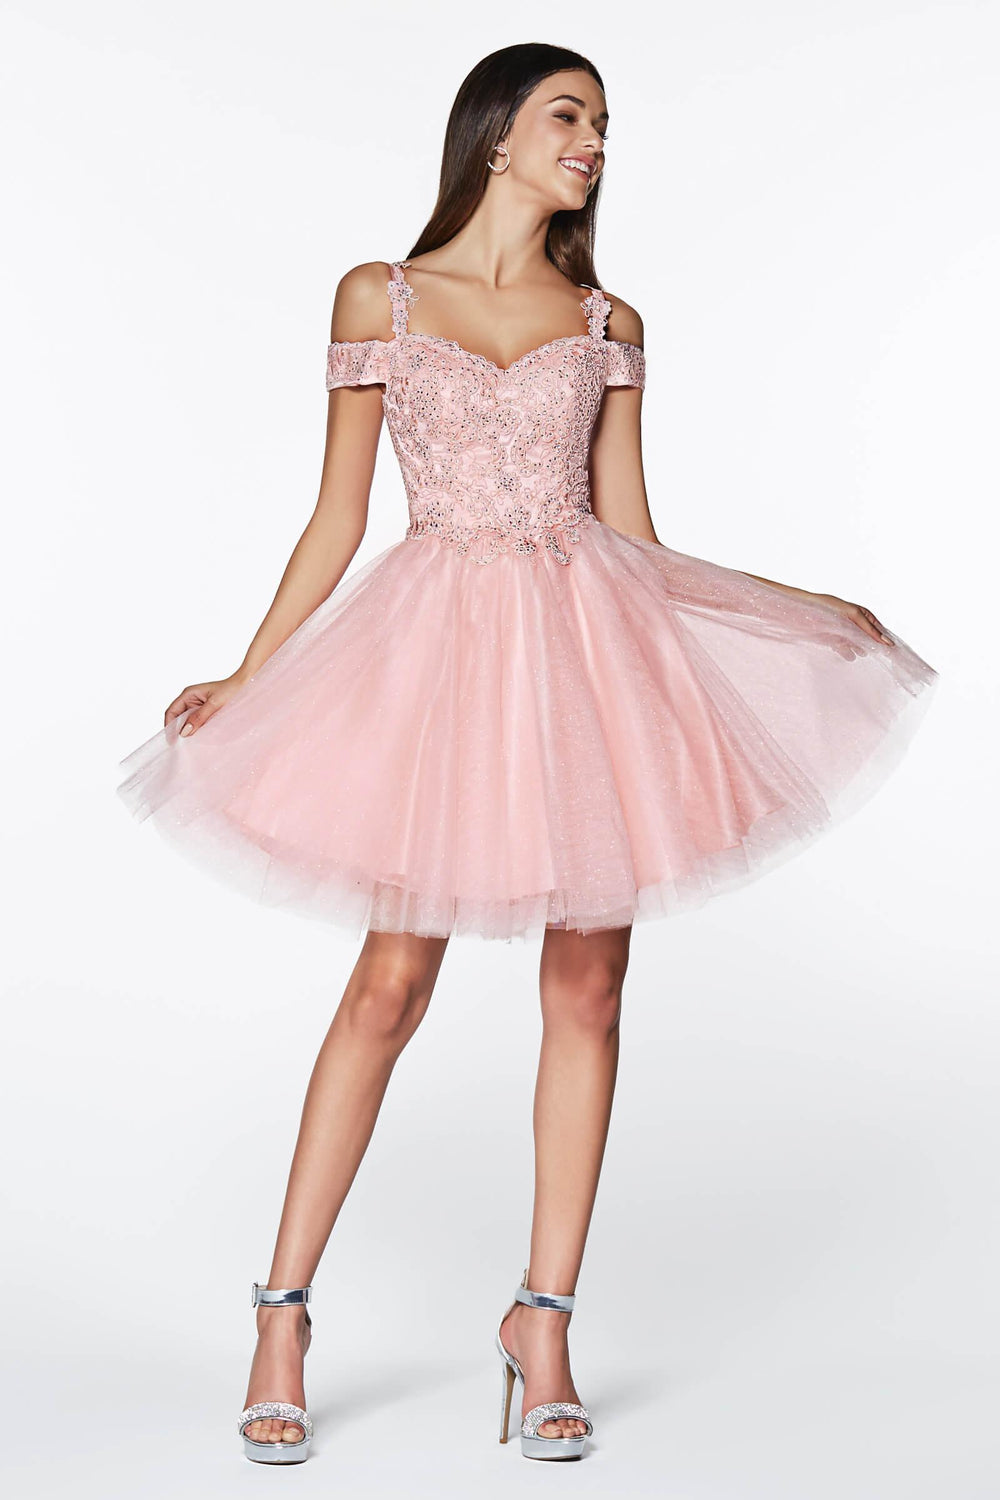 Short Prom Formal Homecoming Dress - The Dress Outlet Blush